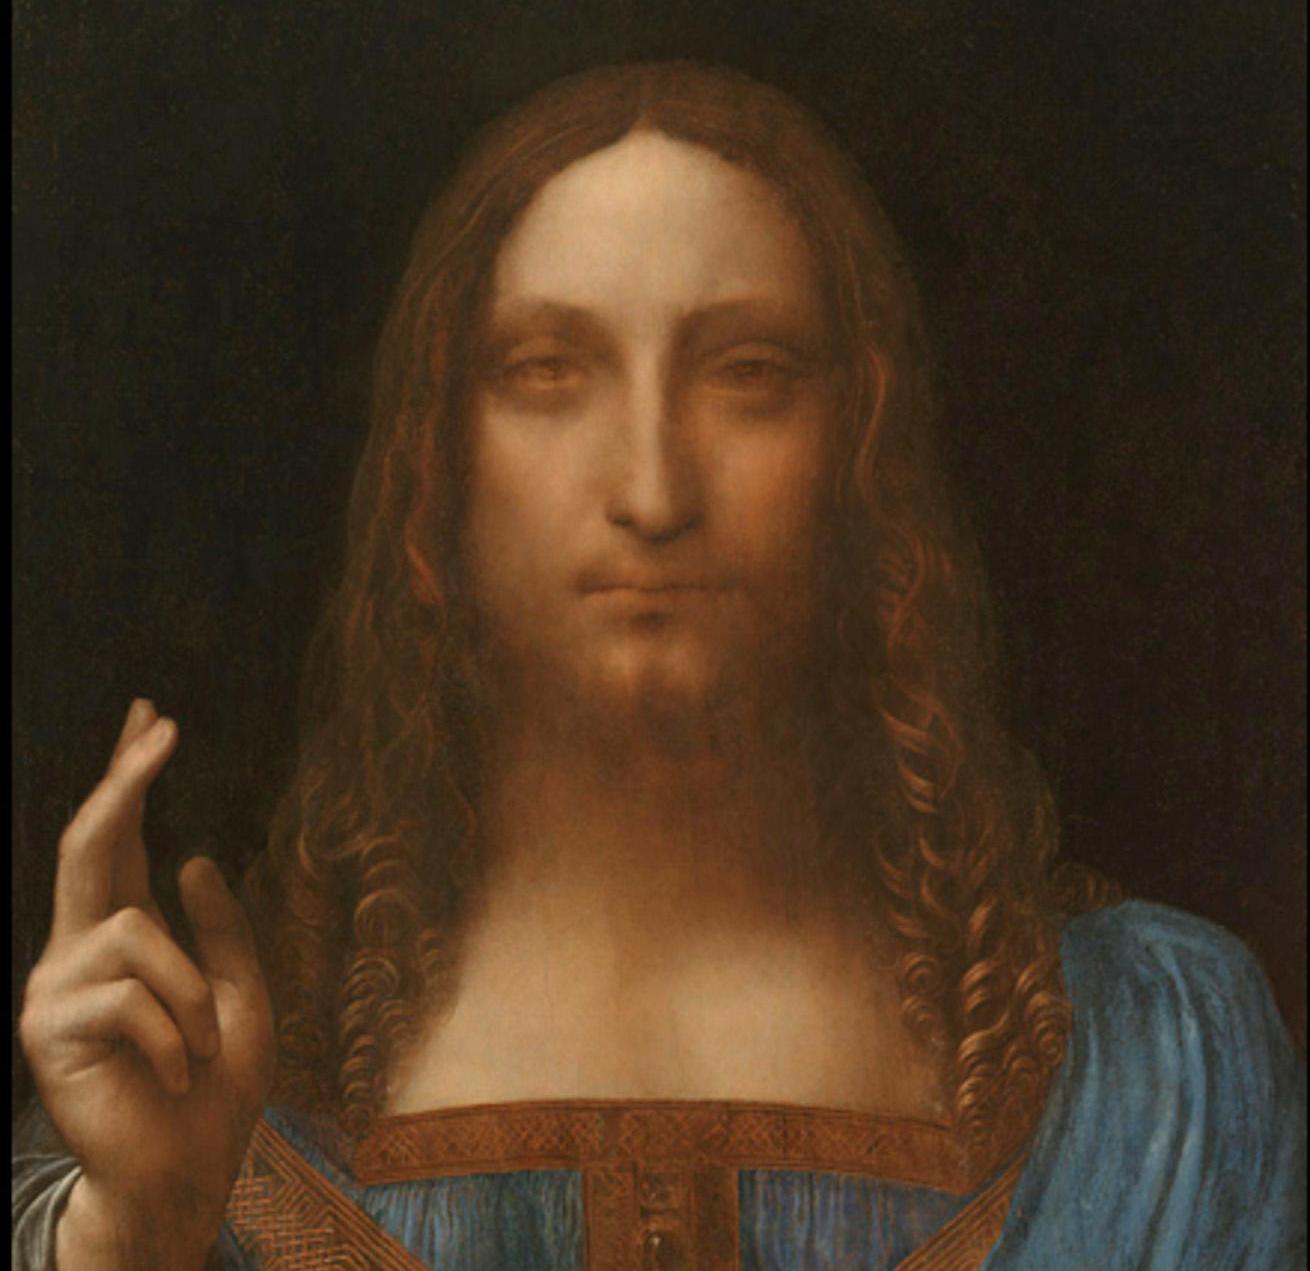 World's most expensive painting is authentic Leonardo, insists expert